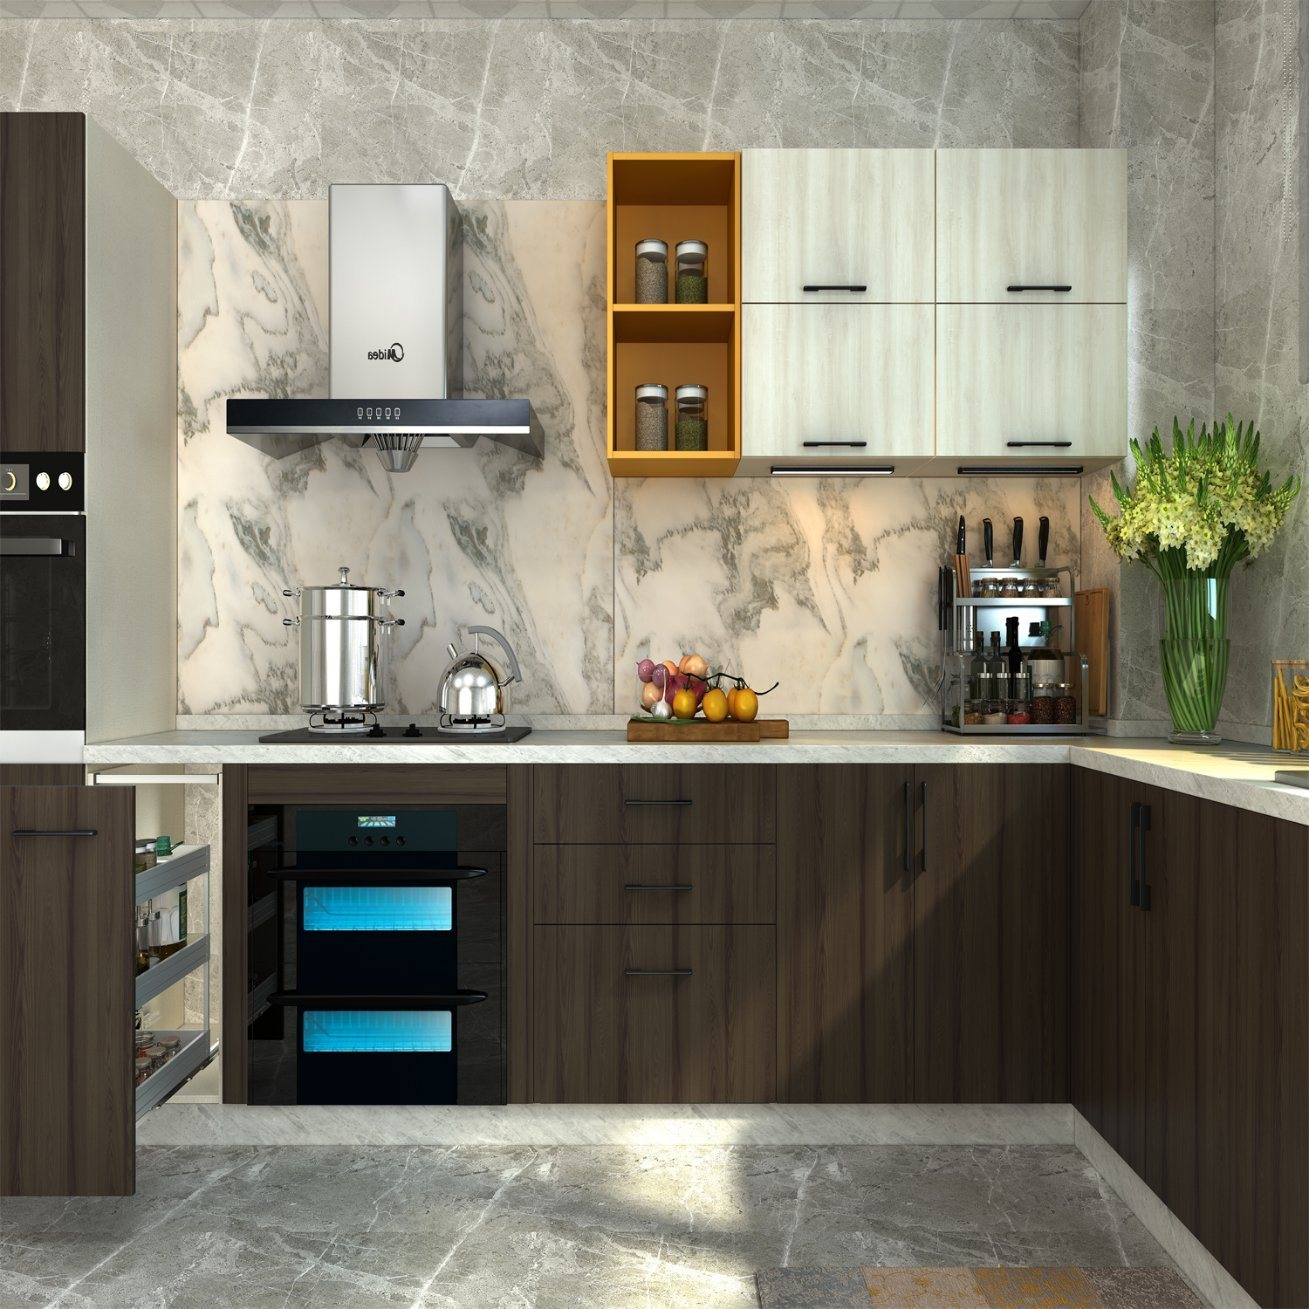 Hot Selling Modern Melamine Kitchen Cabinets Made in China   China ...